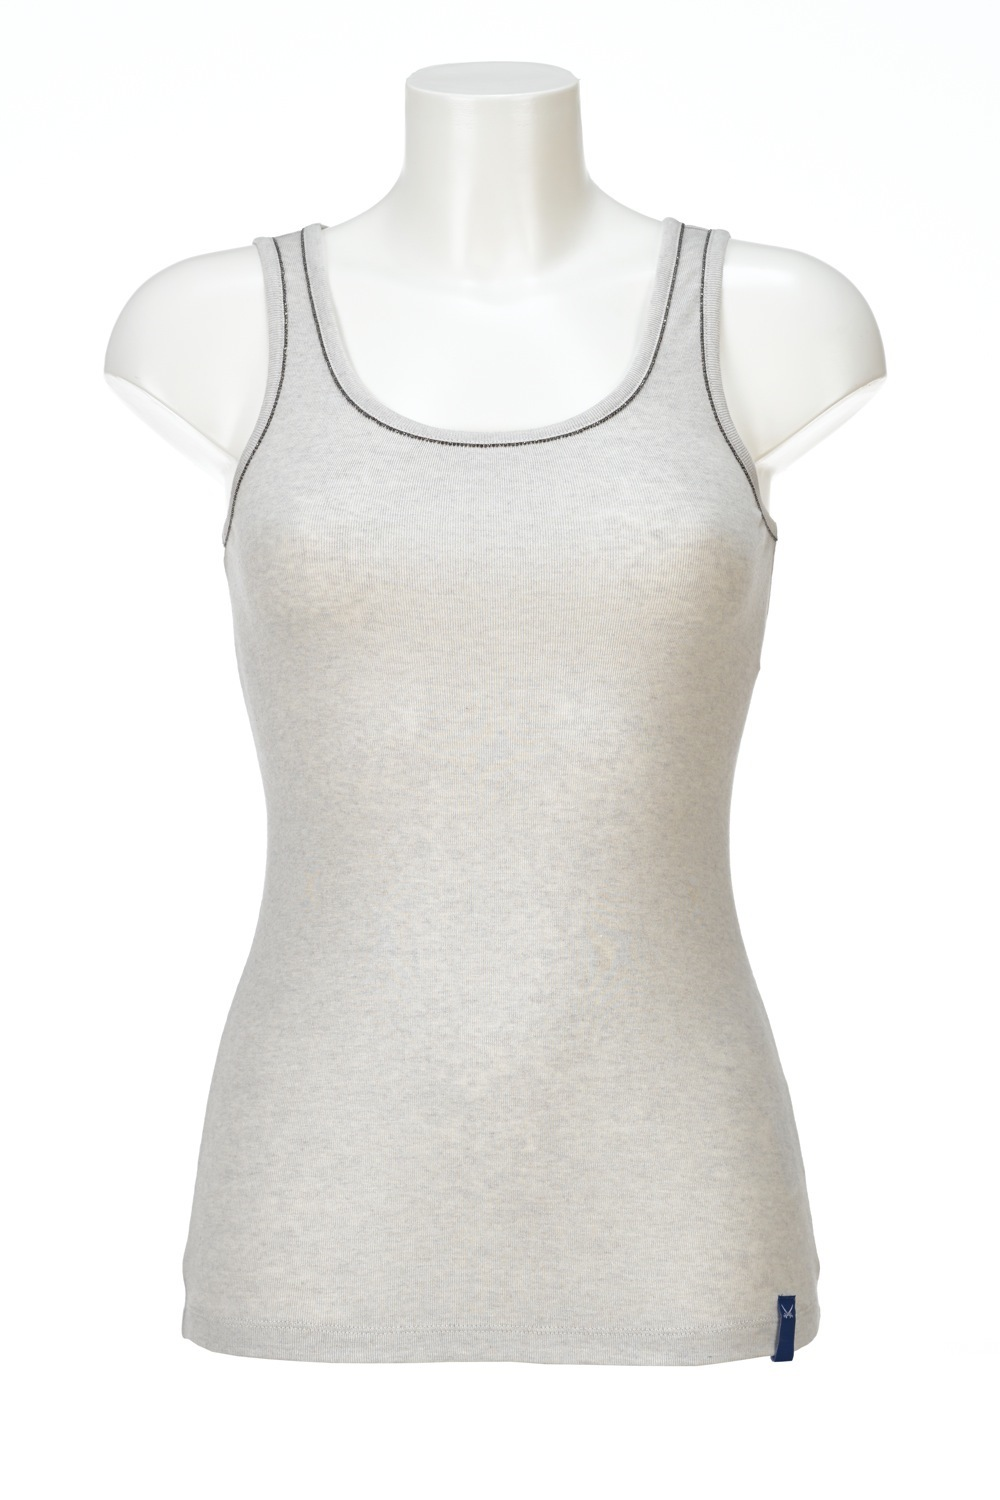 Damen Top CHAIN, Silvermelange, Gr. XS